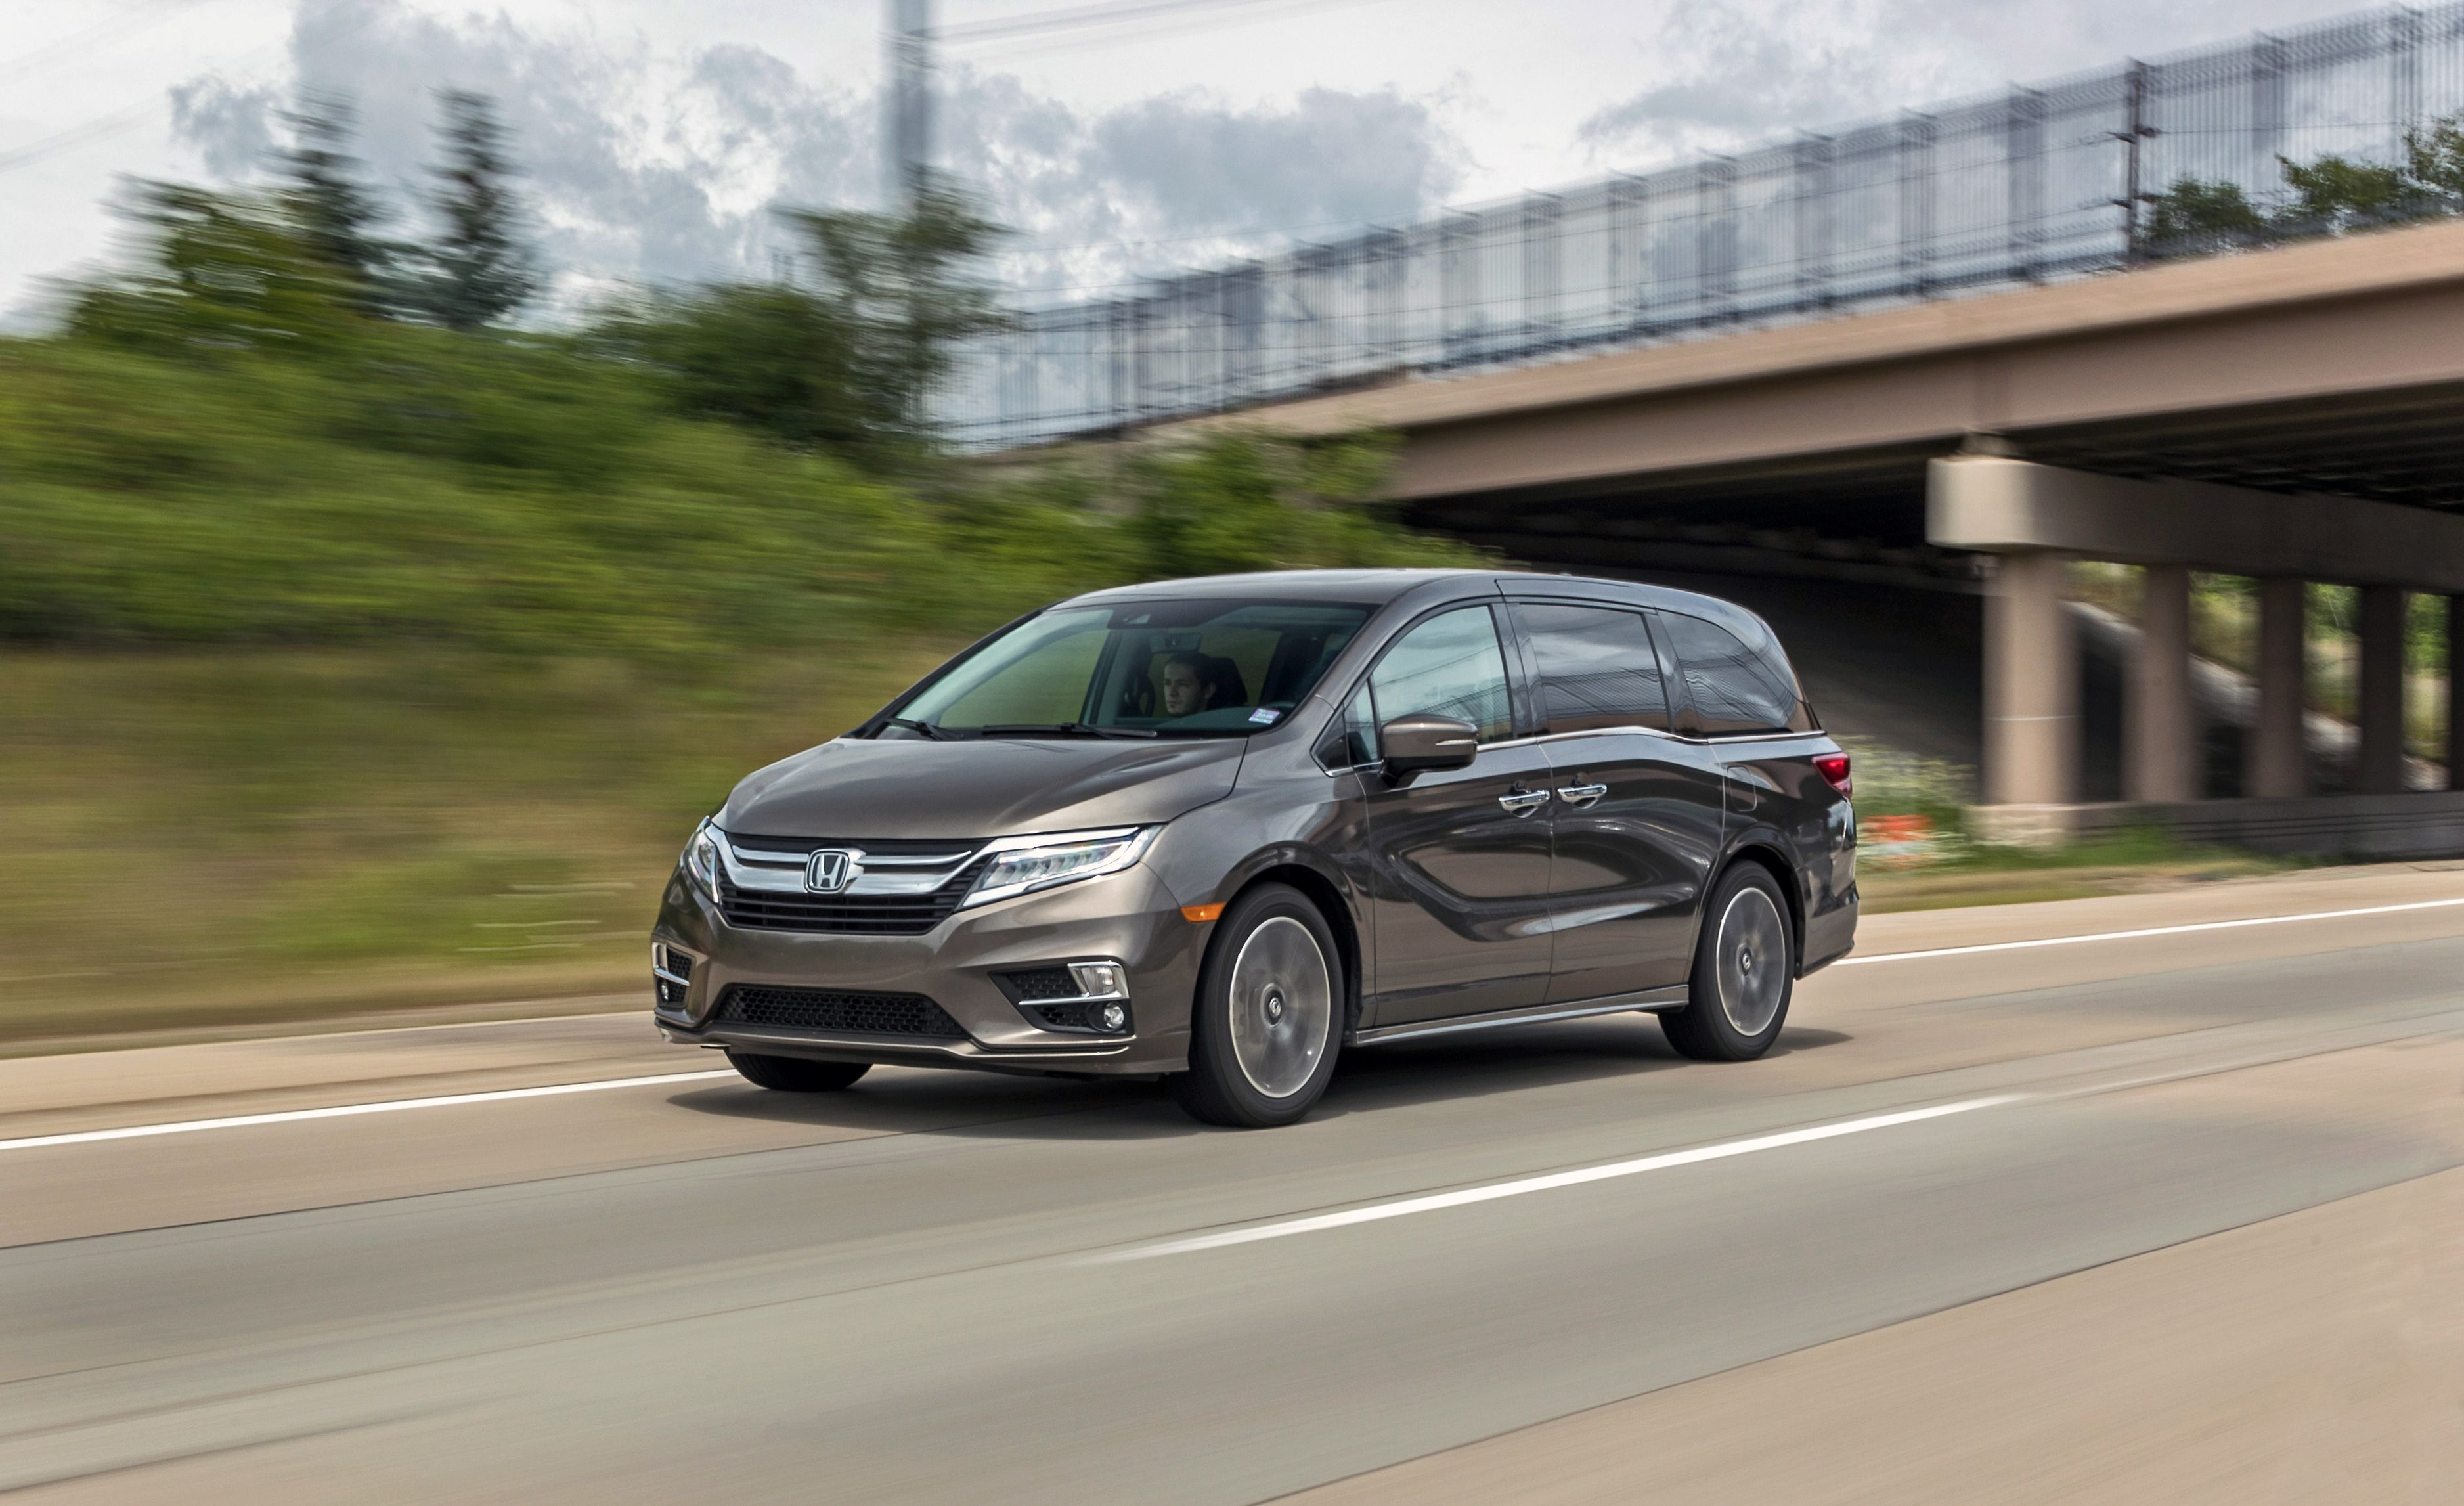 How Reliable Is the 2018 Honda Odyssey?